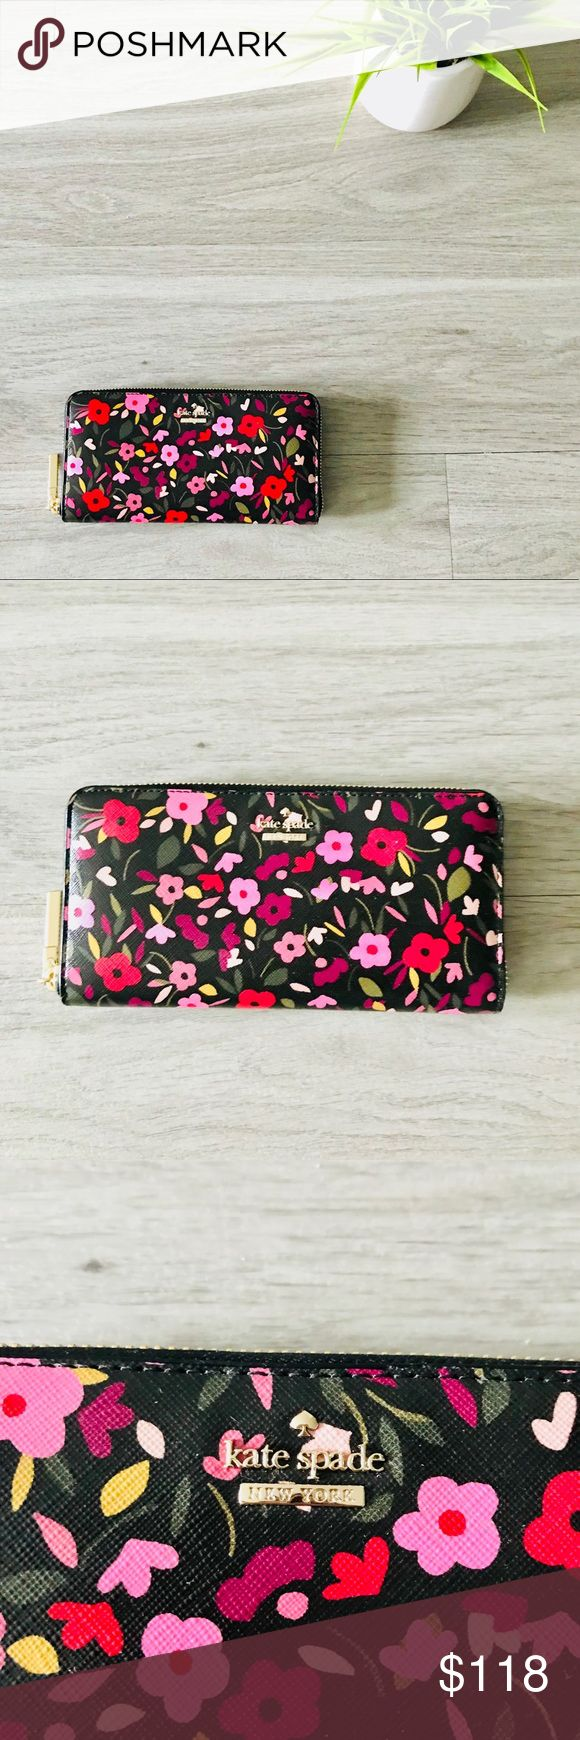 """NWOT! Kate Spade Boho Floral Lacey Wallet Kate Spade Cameron Street Boho Floral Zip Lacey Wallet Large   Material  Crosshatched Leather with matching trim, book stripe print on poly twill lining, 14 karat gold plated hardware   * zip around continental wallet * 12 credit card slots, 2 billfolds, zipper change pocket and exterior slide pocket   4""""h x 7.6"""" w x 0.8""""d kate spade Bags Wallets"""